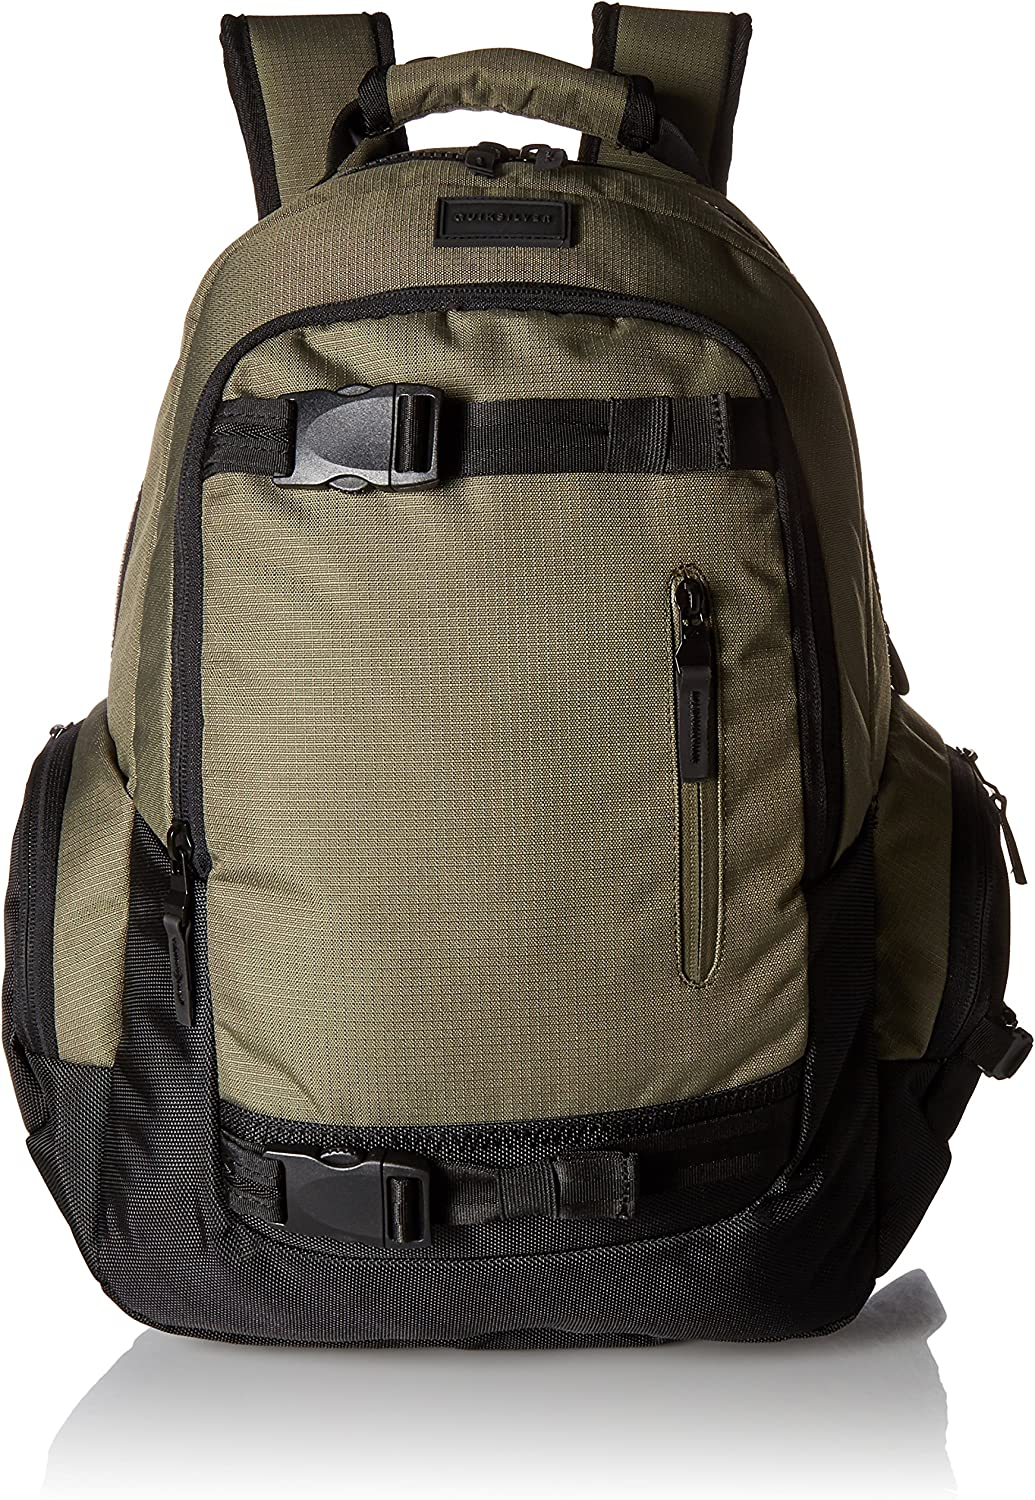 Quiksilver Men's Raker Backpack